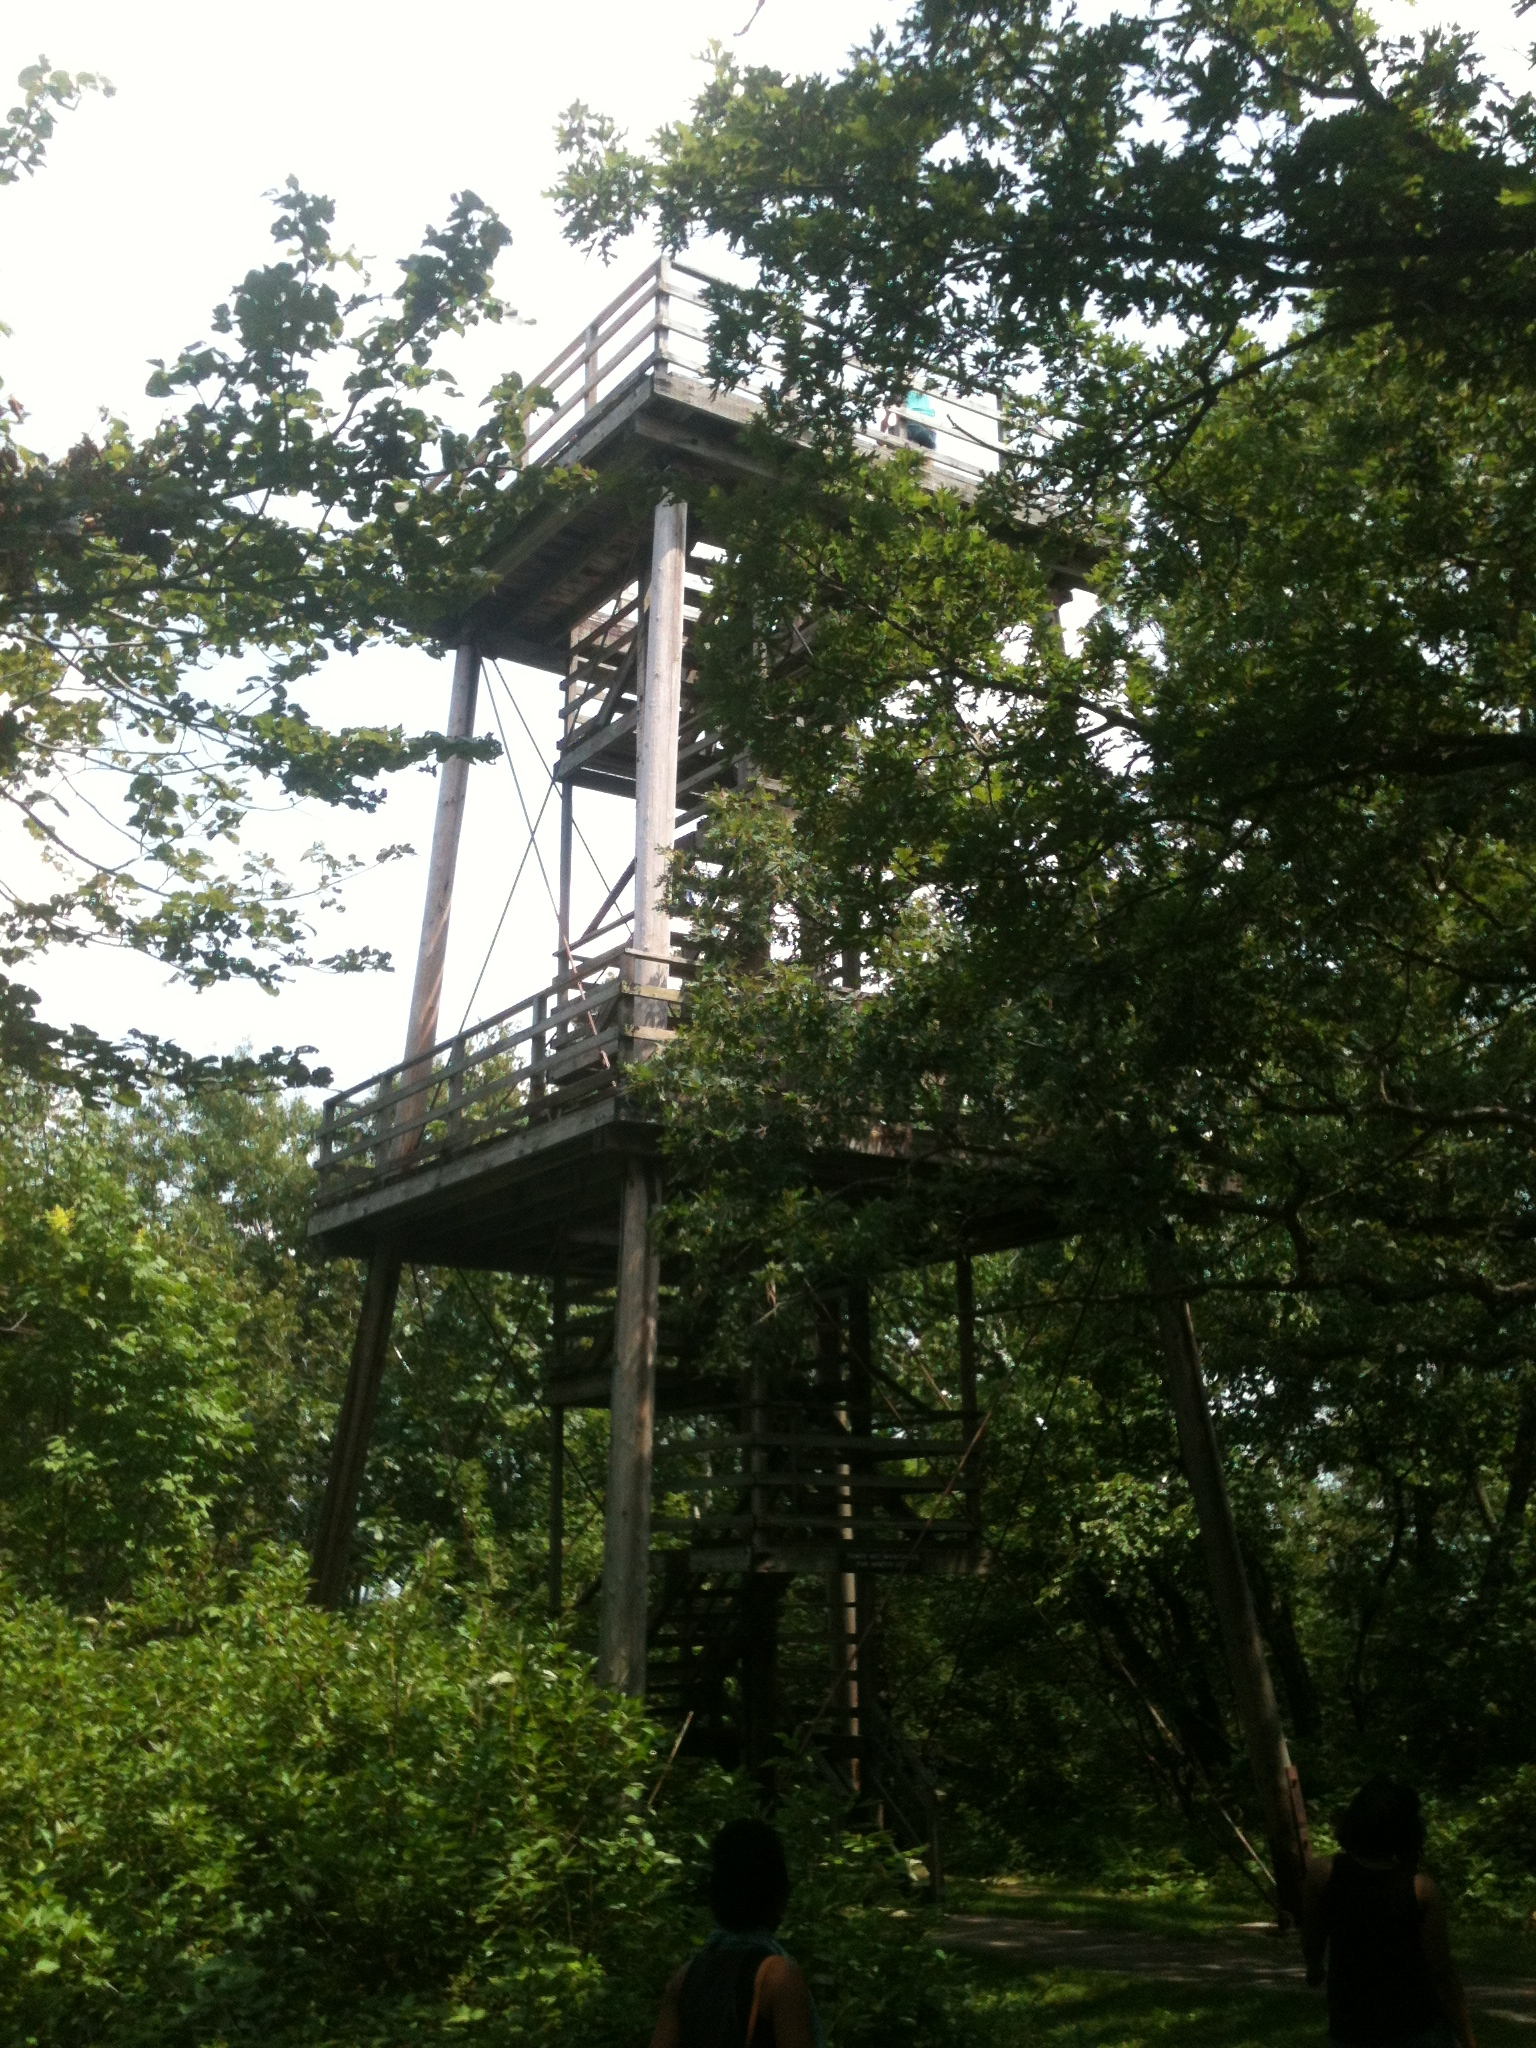 Nearby Observation Tower